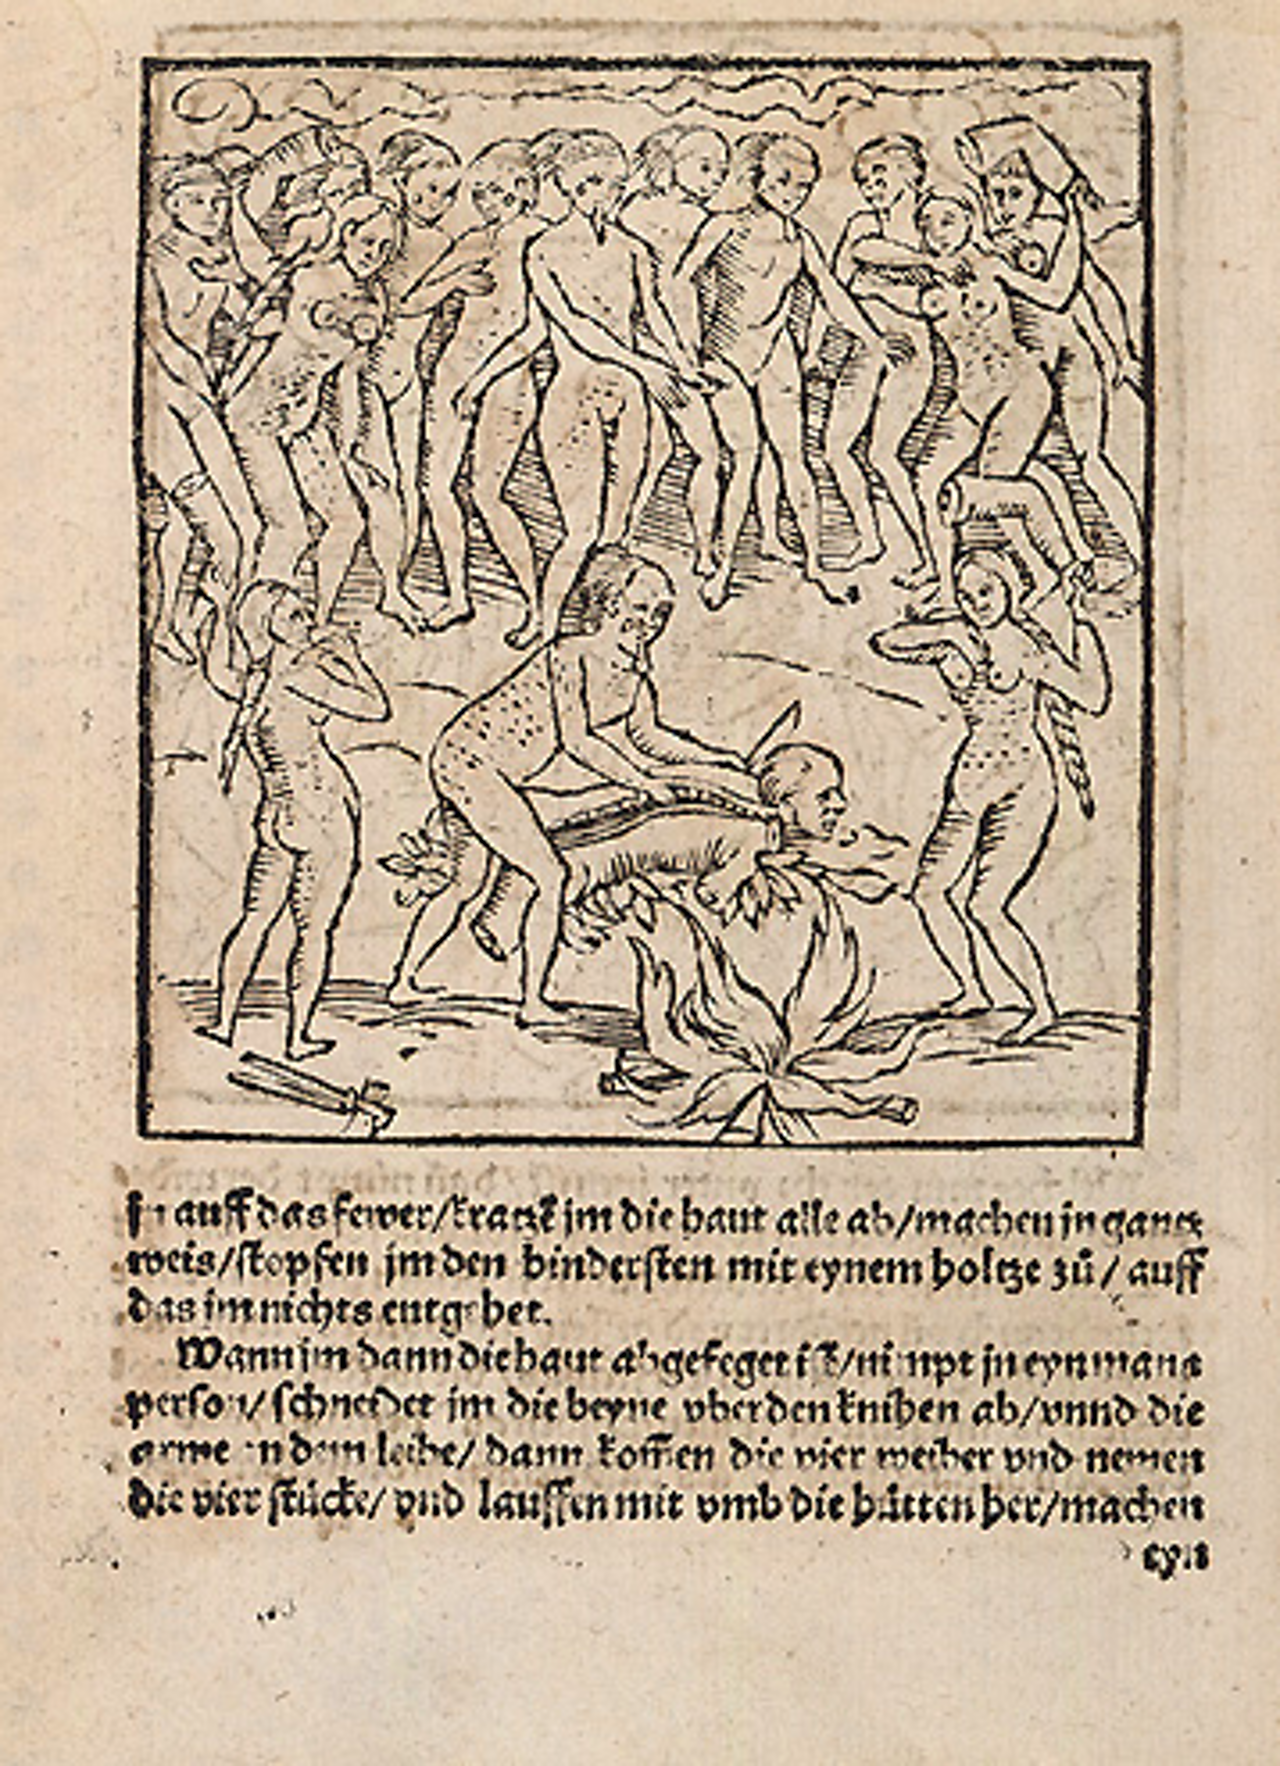 Illustration of cannibalism as described by Staden, circa mid-16th century.